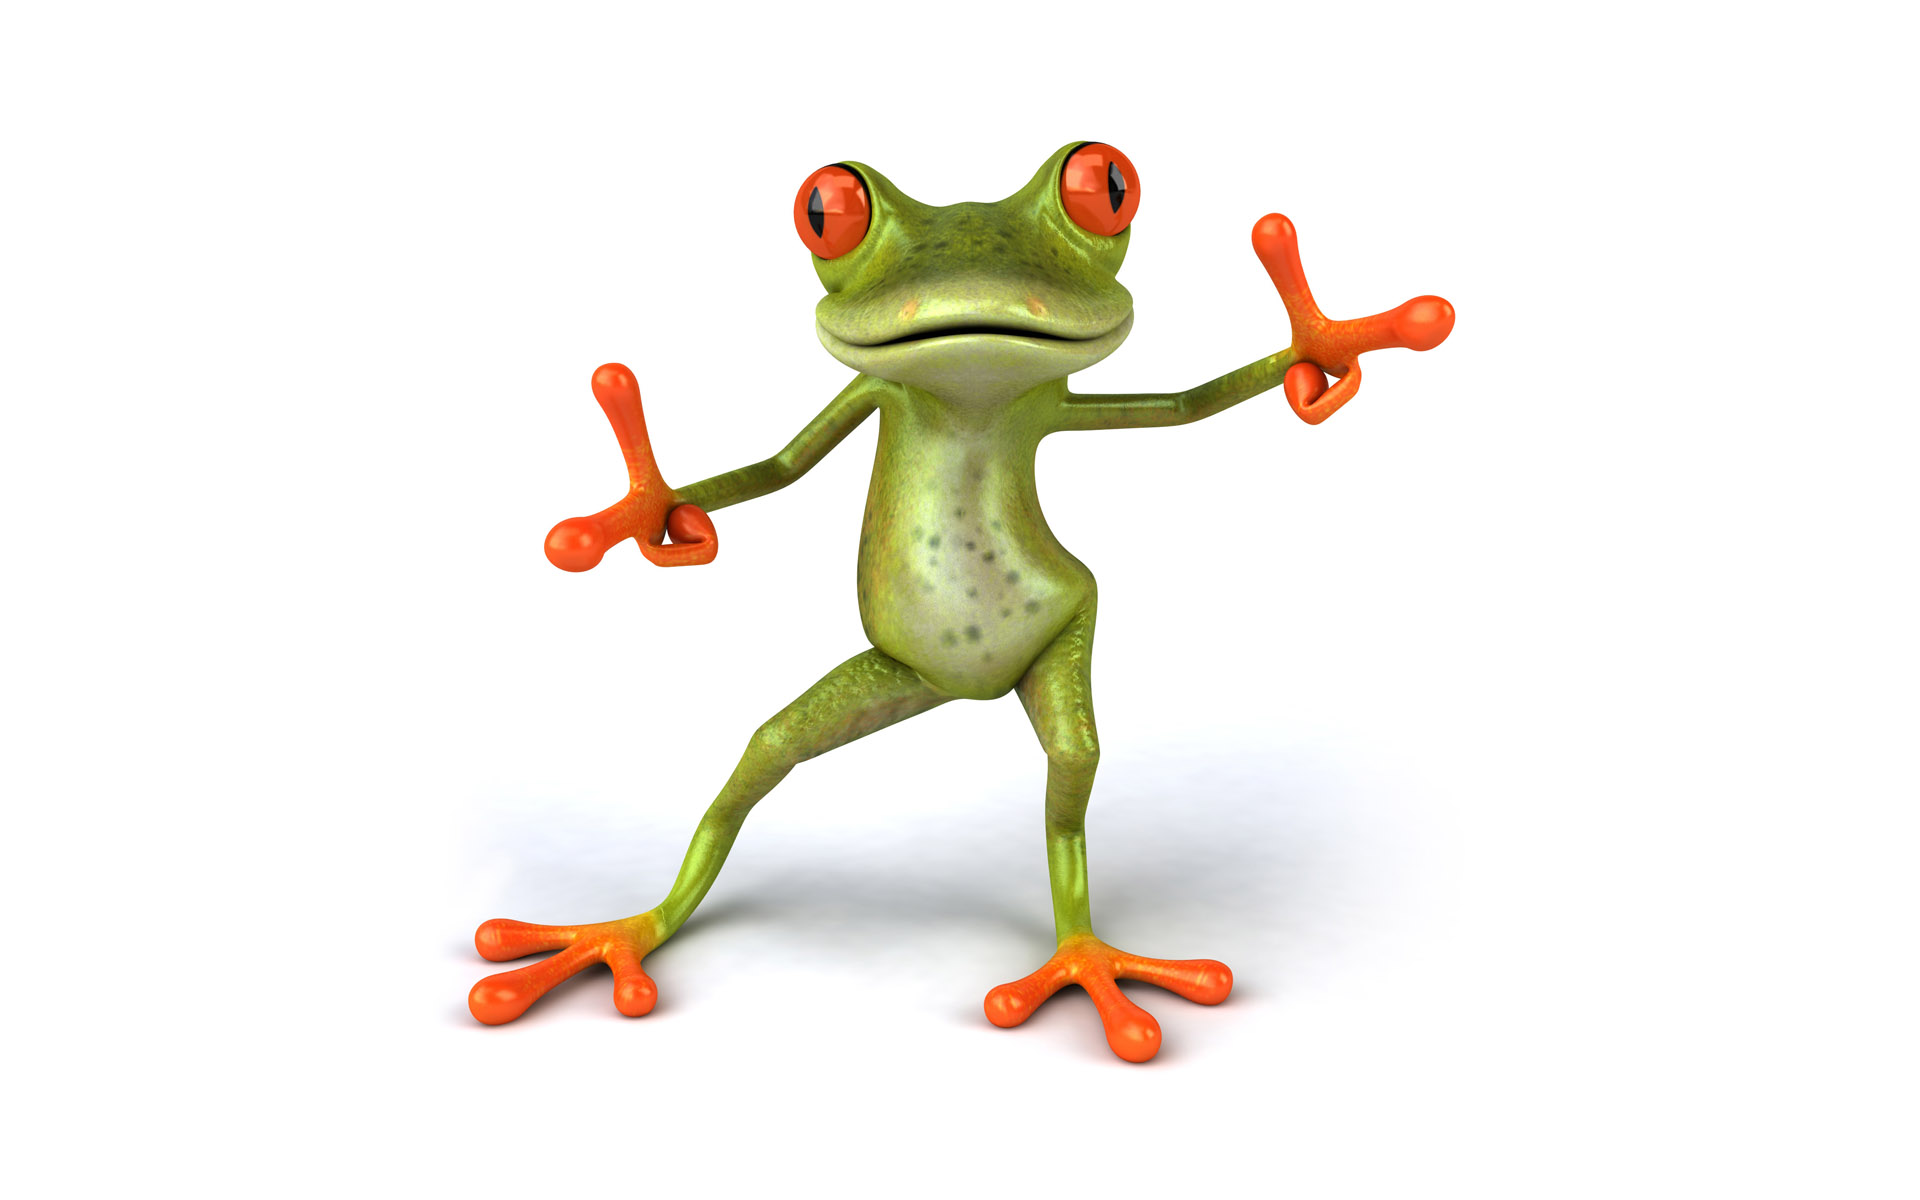 Frogs 3d graphics animals white background image frogs 3d graphics animals white background voltagebd Images